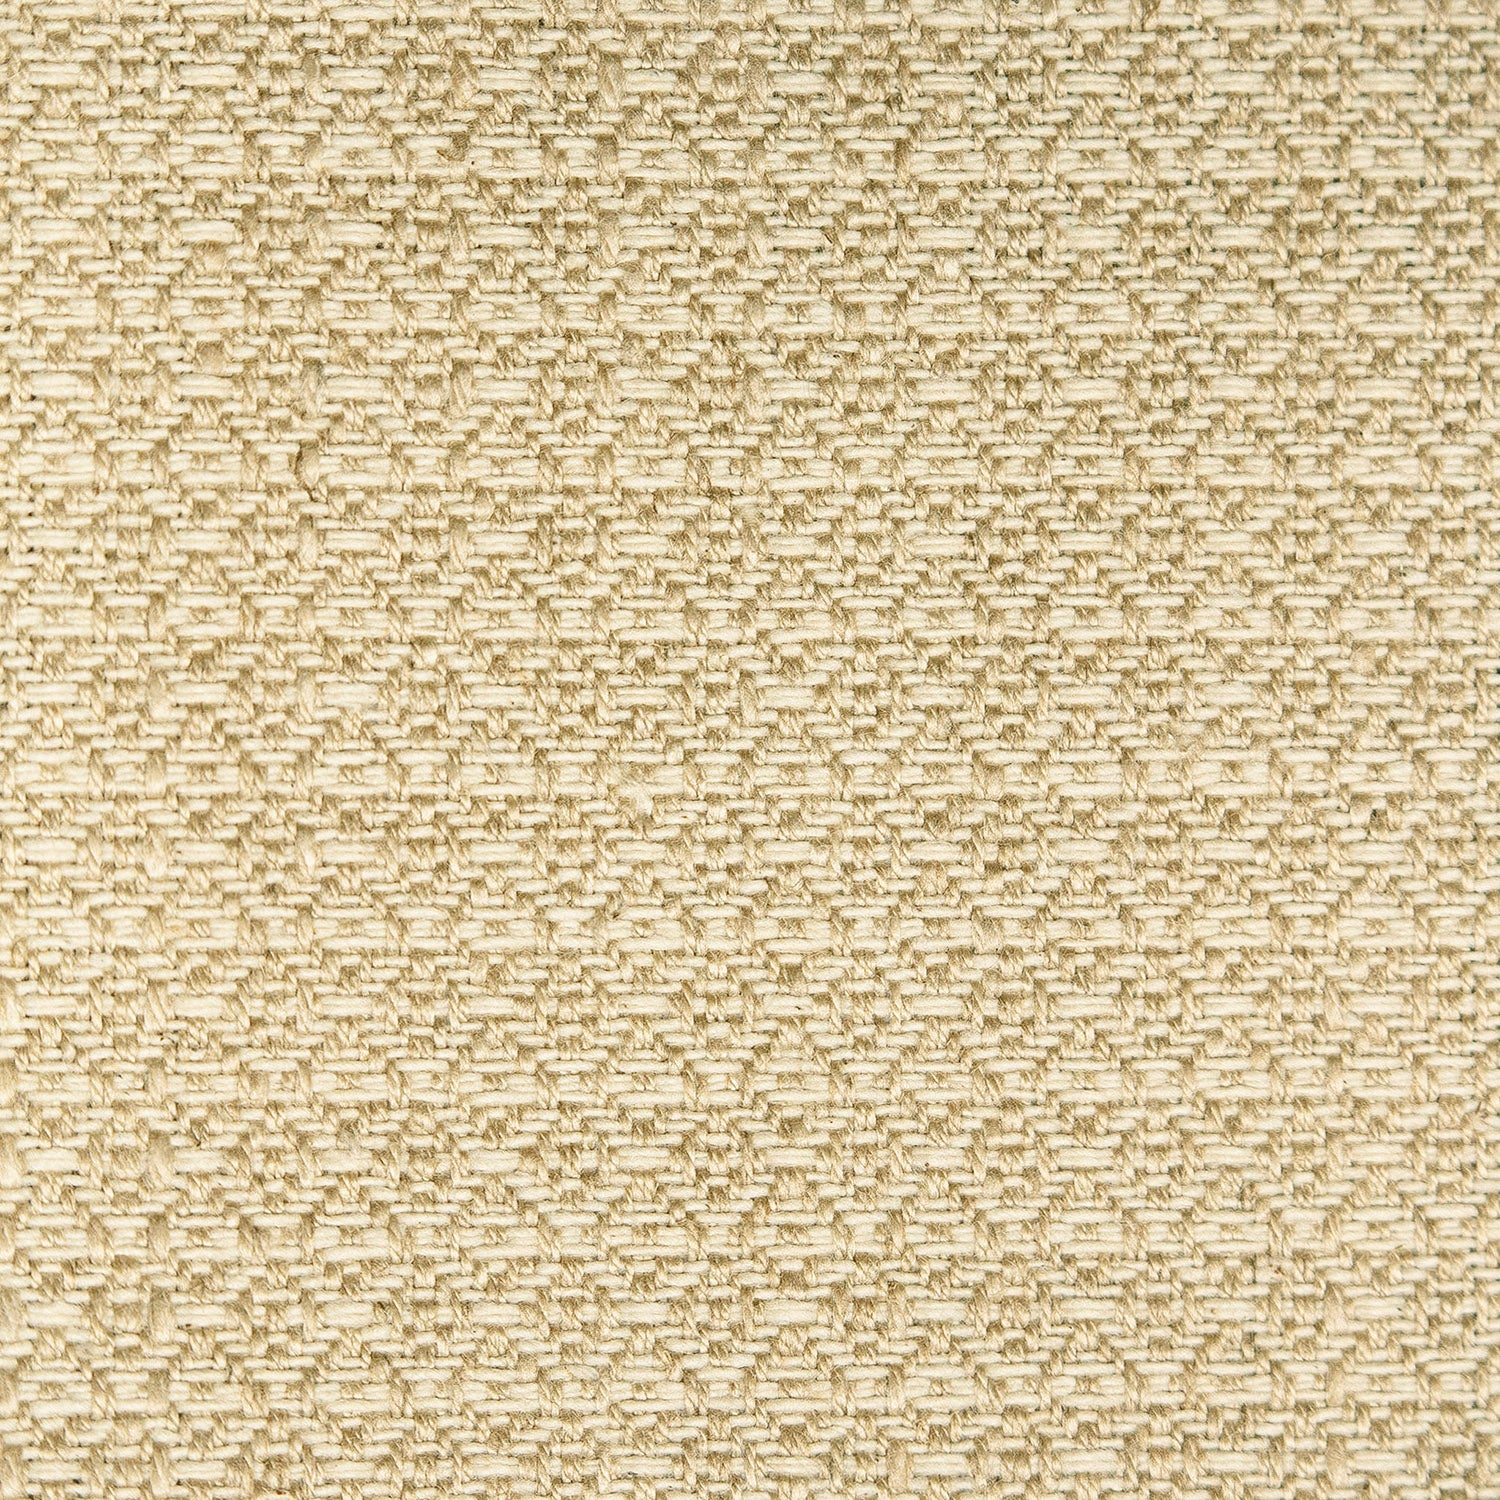 Fabric sample of a neutral weave fabric with a small diamond design and stain resistant finish for curtains and upholstery